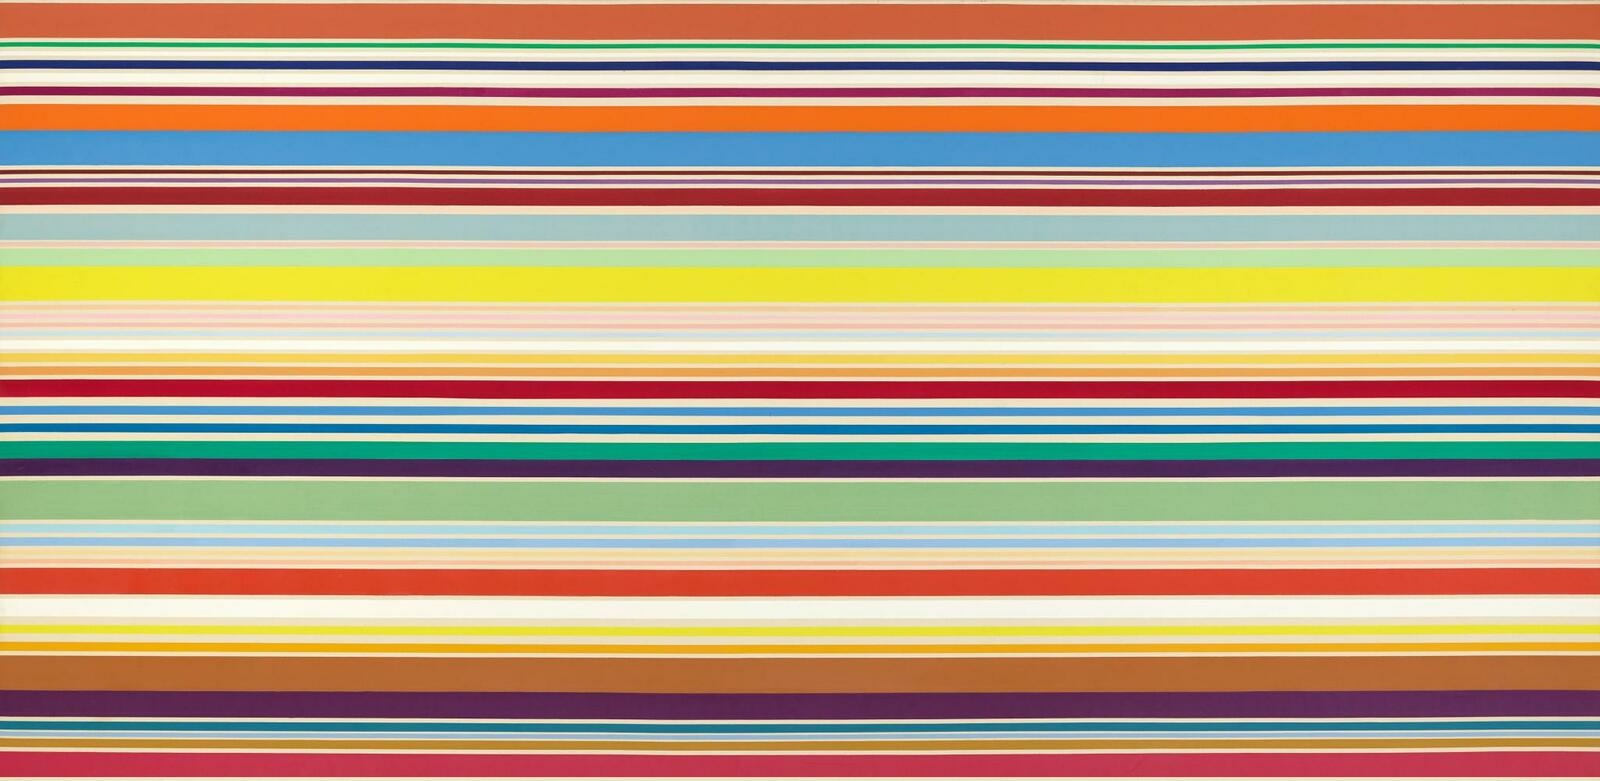 An abstract landscape of sharp horizontal lines of varied weights in shades of orange, yellow, red, green, blue, and white.